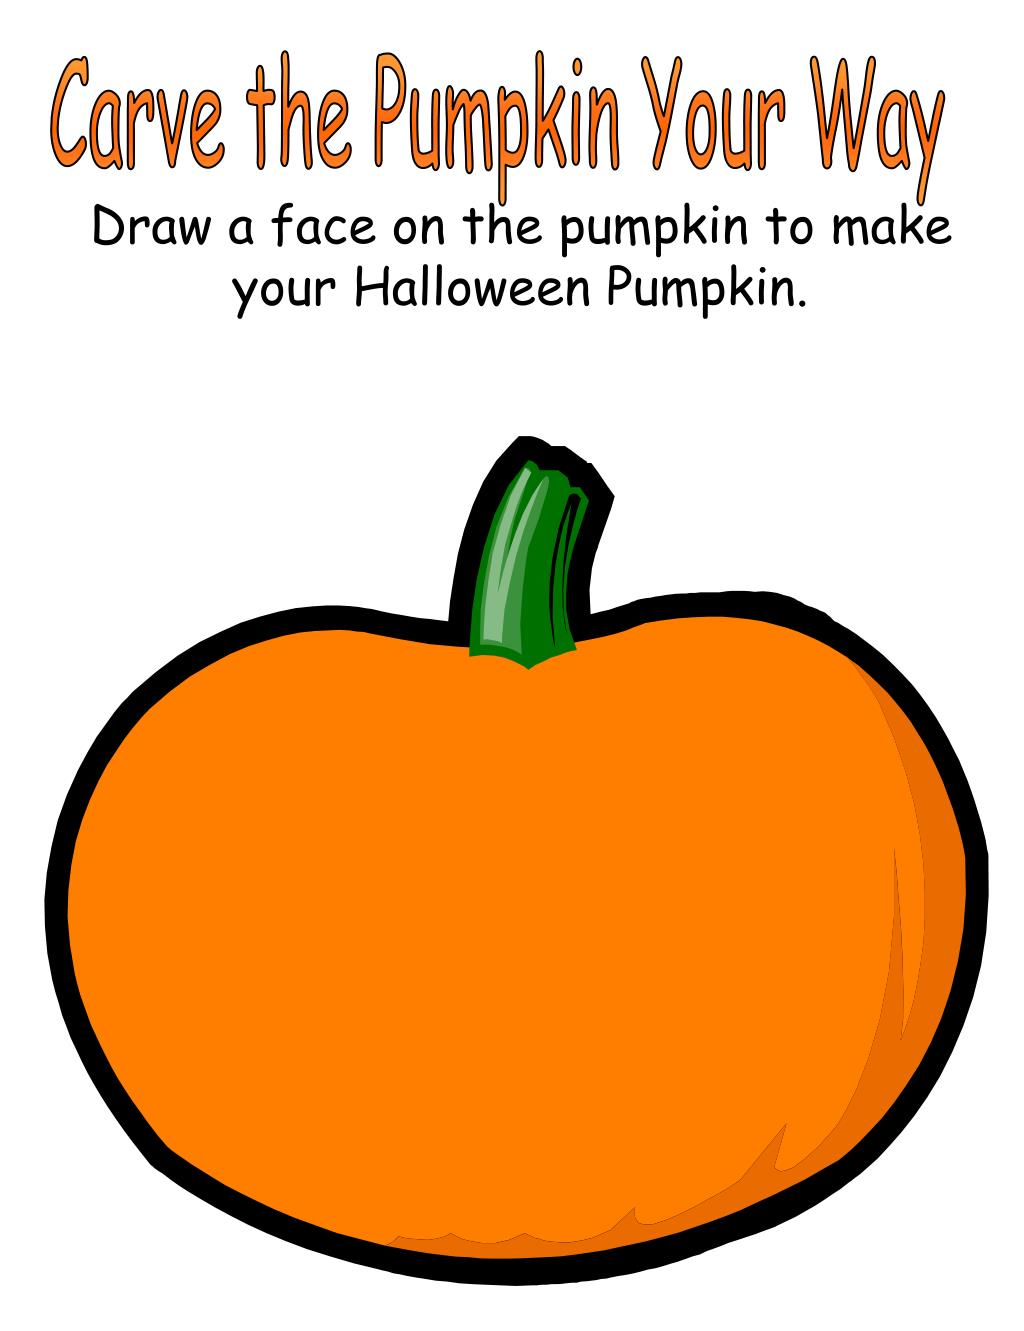 Carve the Pumpkin Your Way